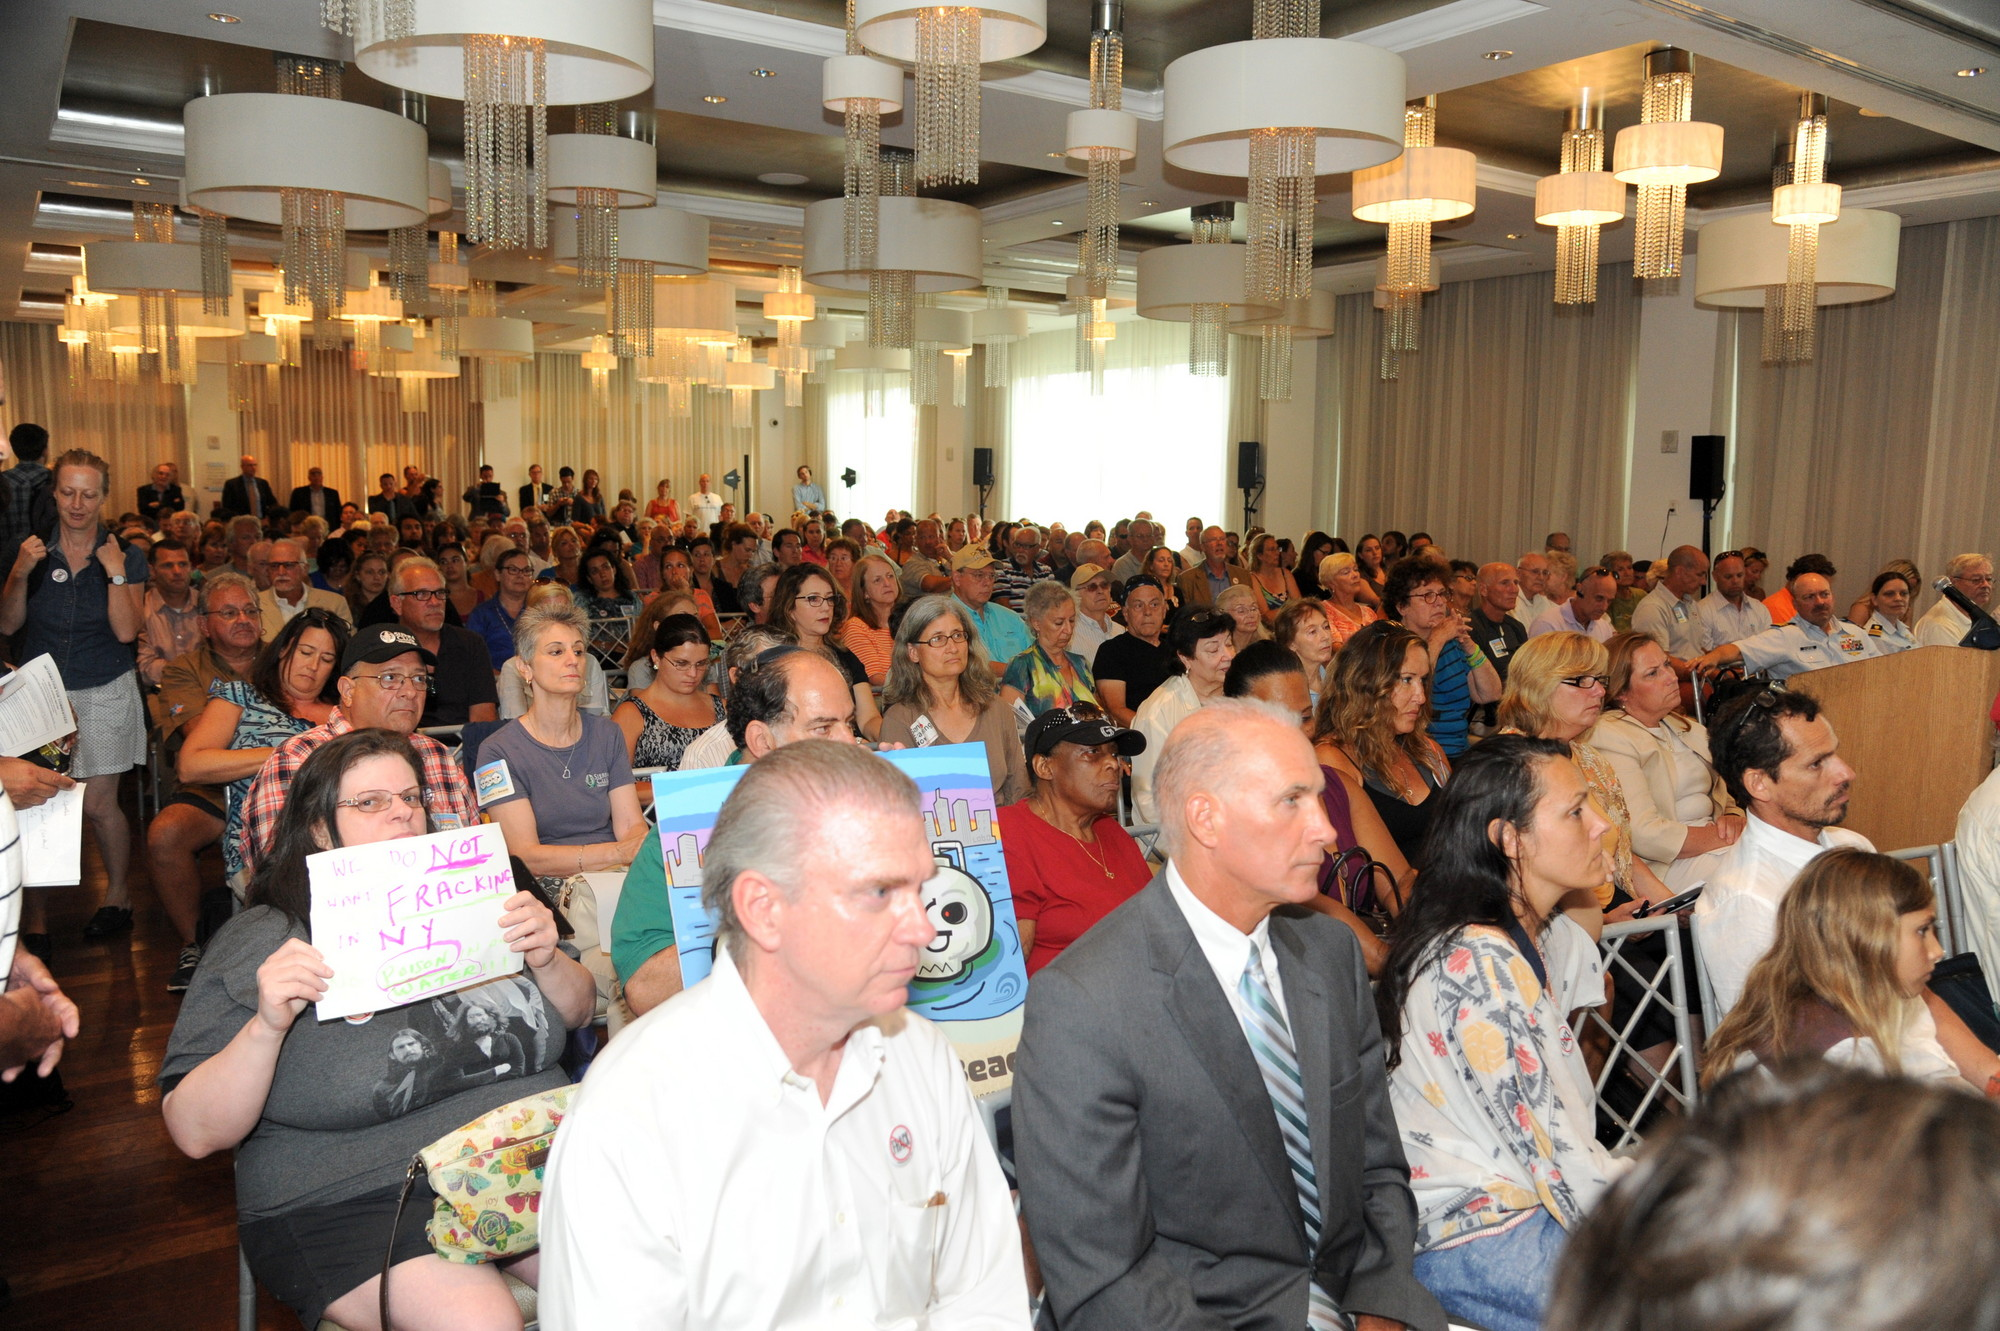 Hundreds of residents voiced their opposition to a proposed liquefied natural gas terminal at a public hearing at the Allegria Hotel on Tuesday.